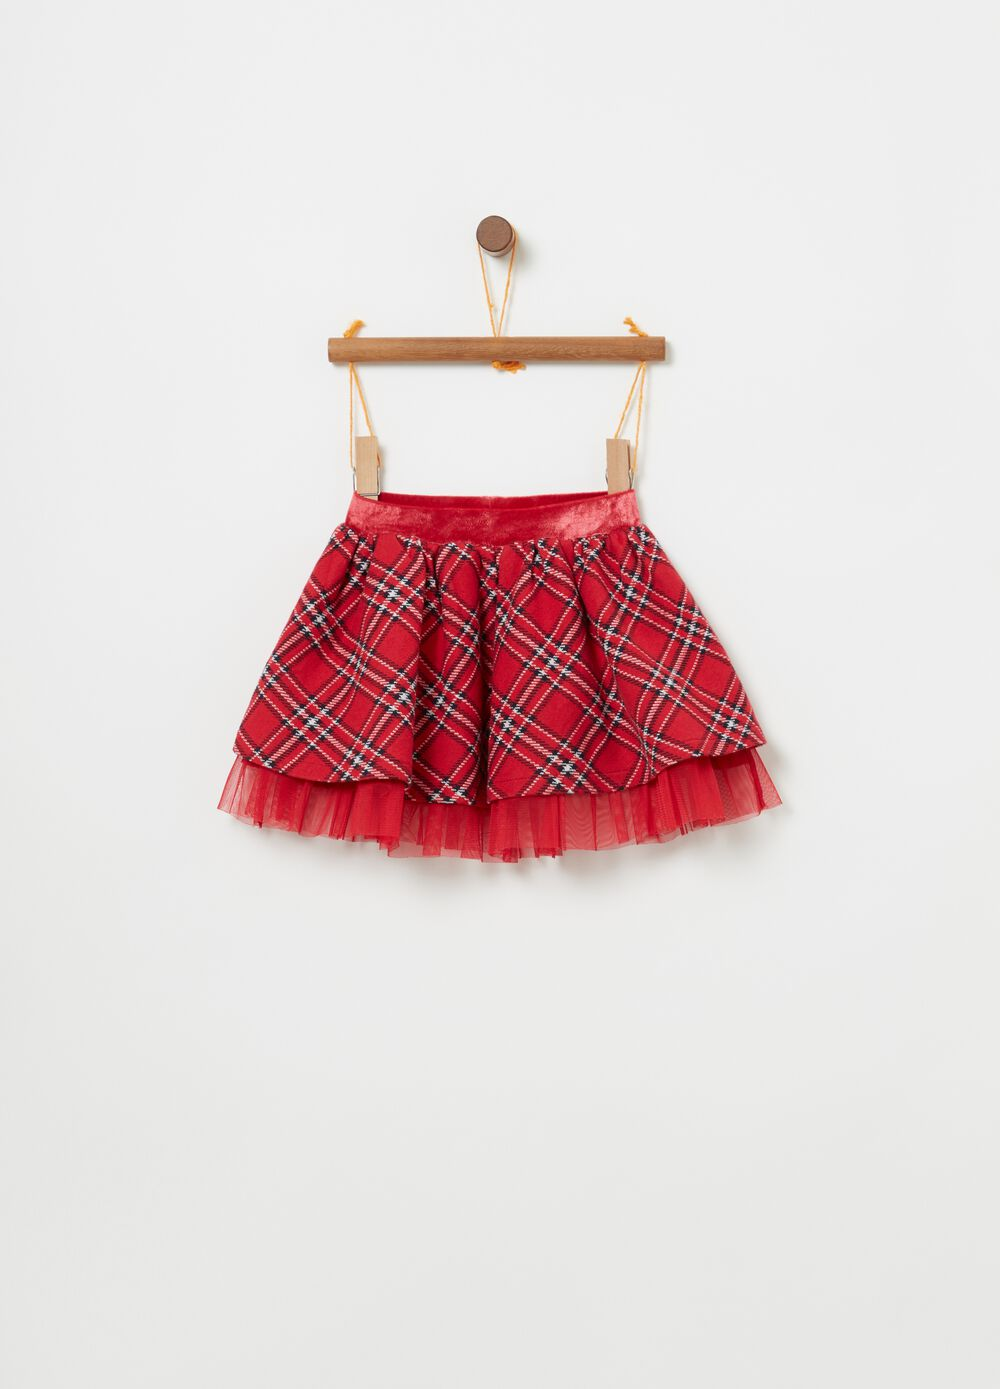 Skirt with lurex tulle and check pattern